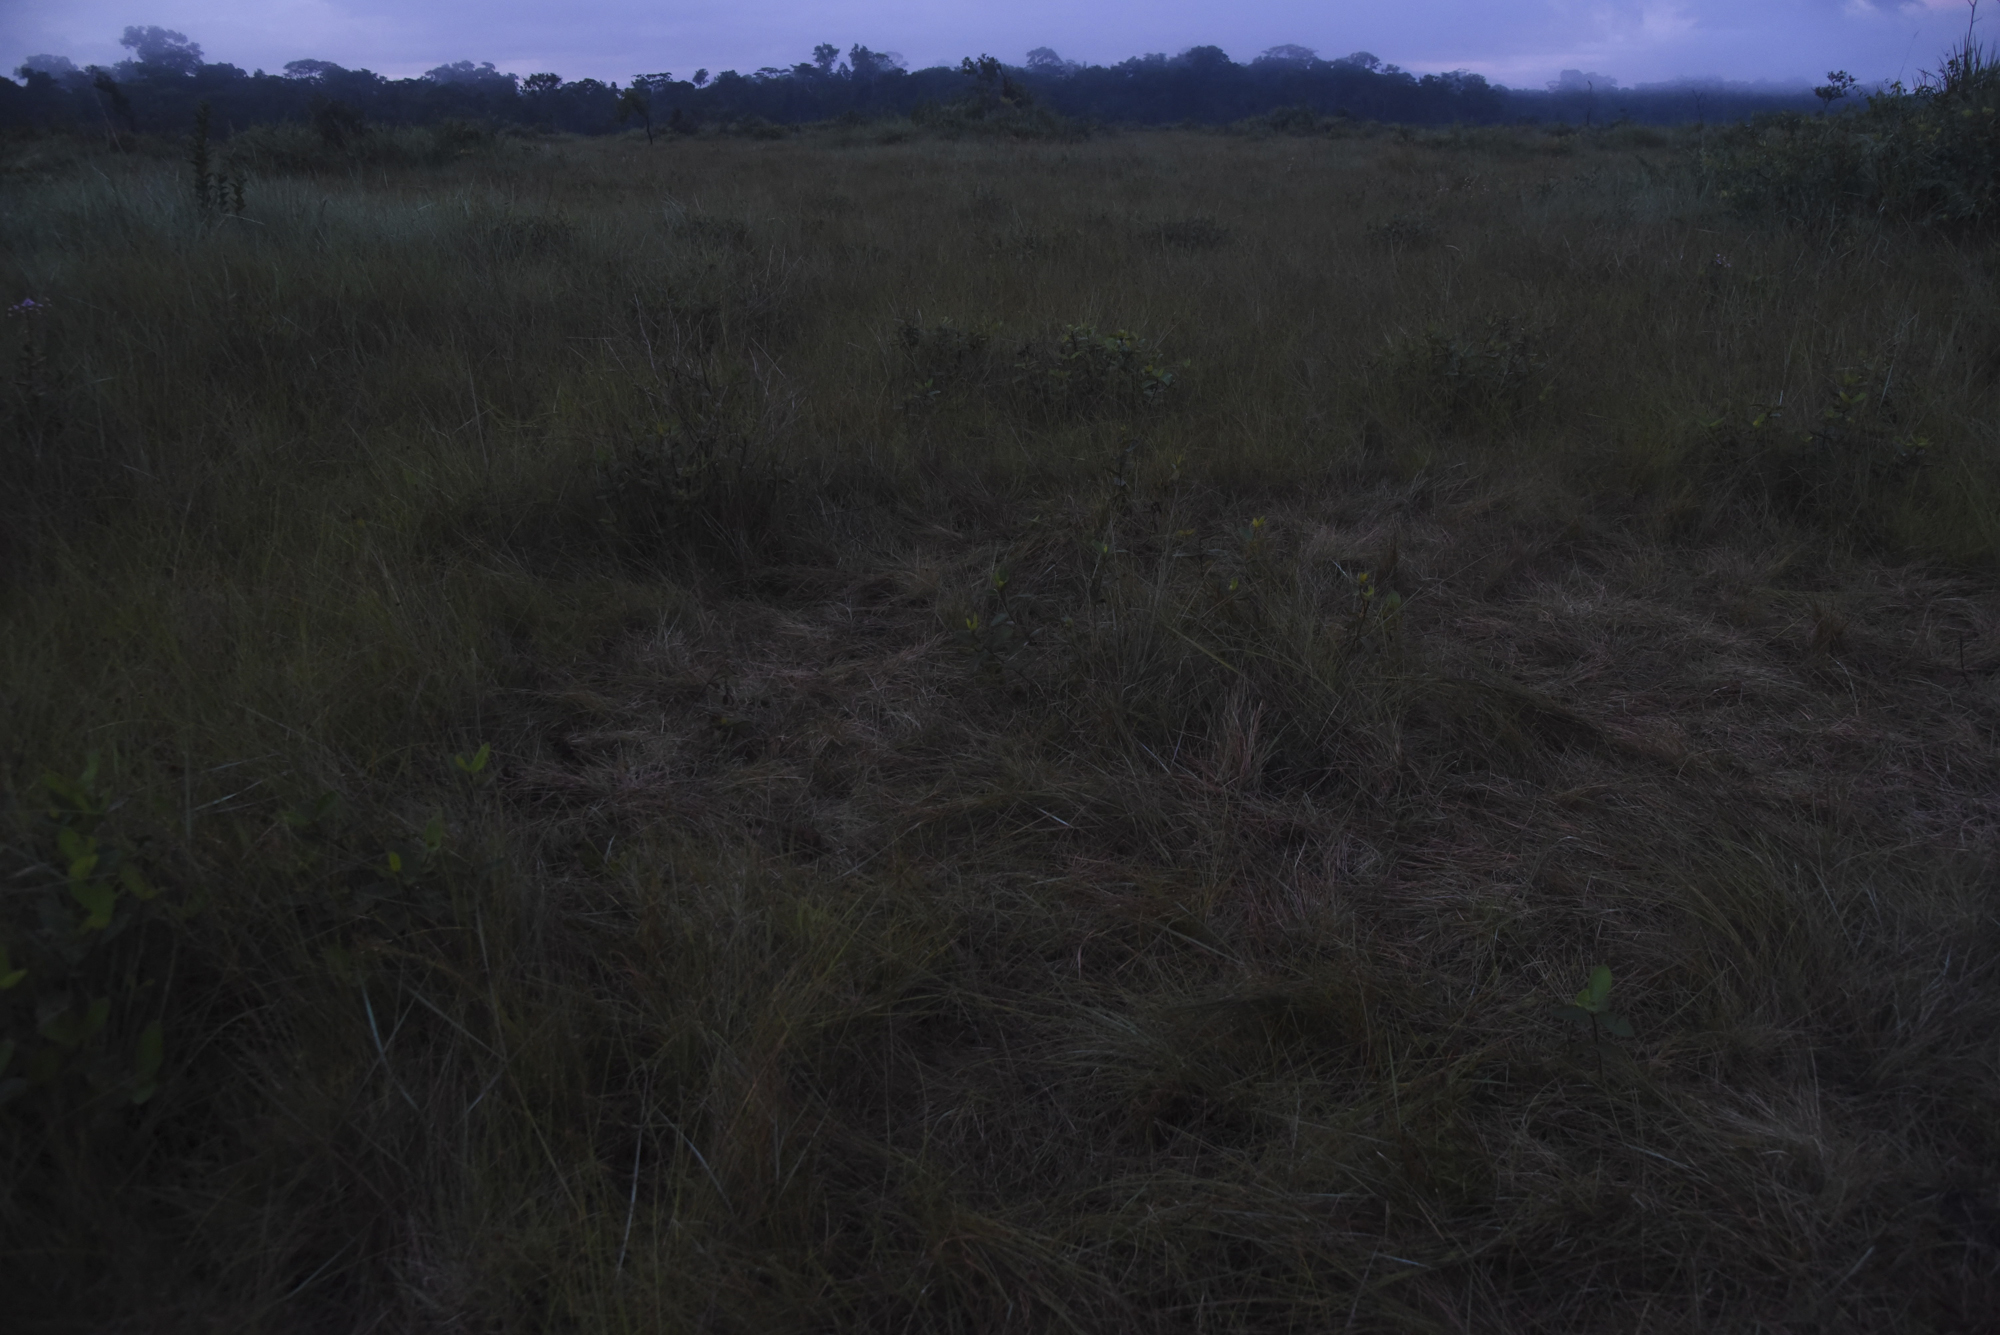 Pampas de Heath is considered a unique and isolated habitat in Peru and is home to a number of endemic bird, mammal and reptile species.